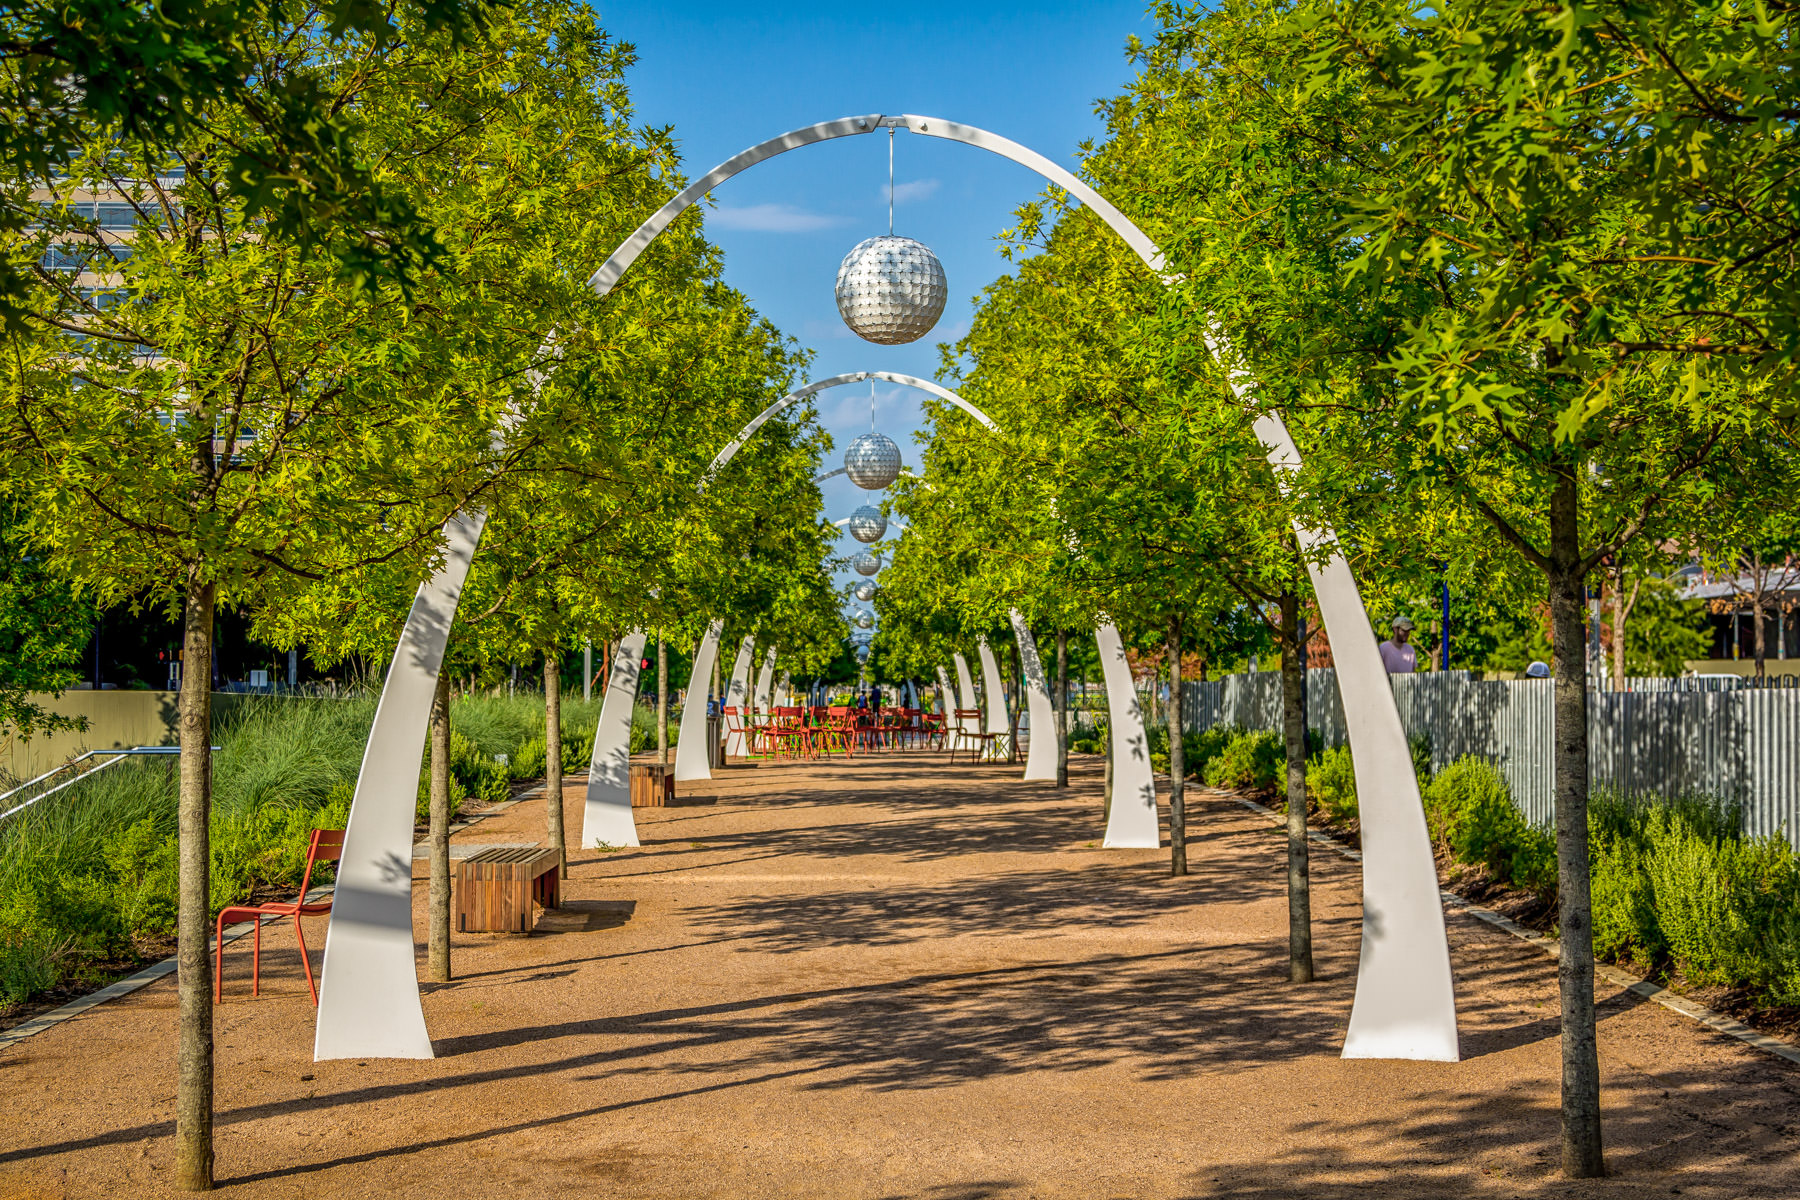 A series of arches in Dallas' Klyde Warren Park.